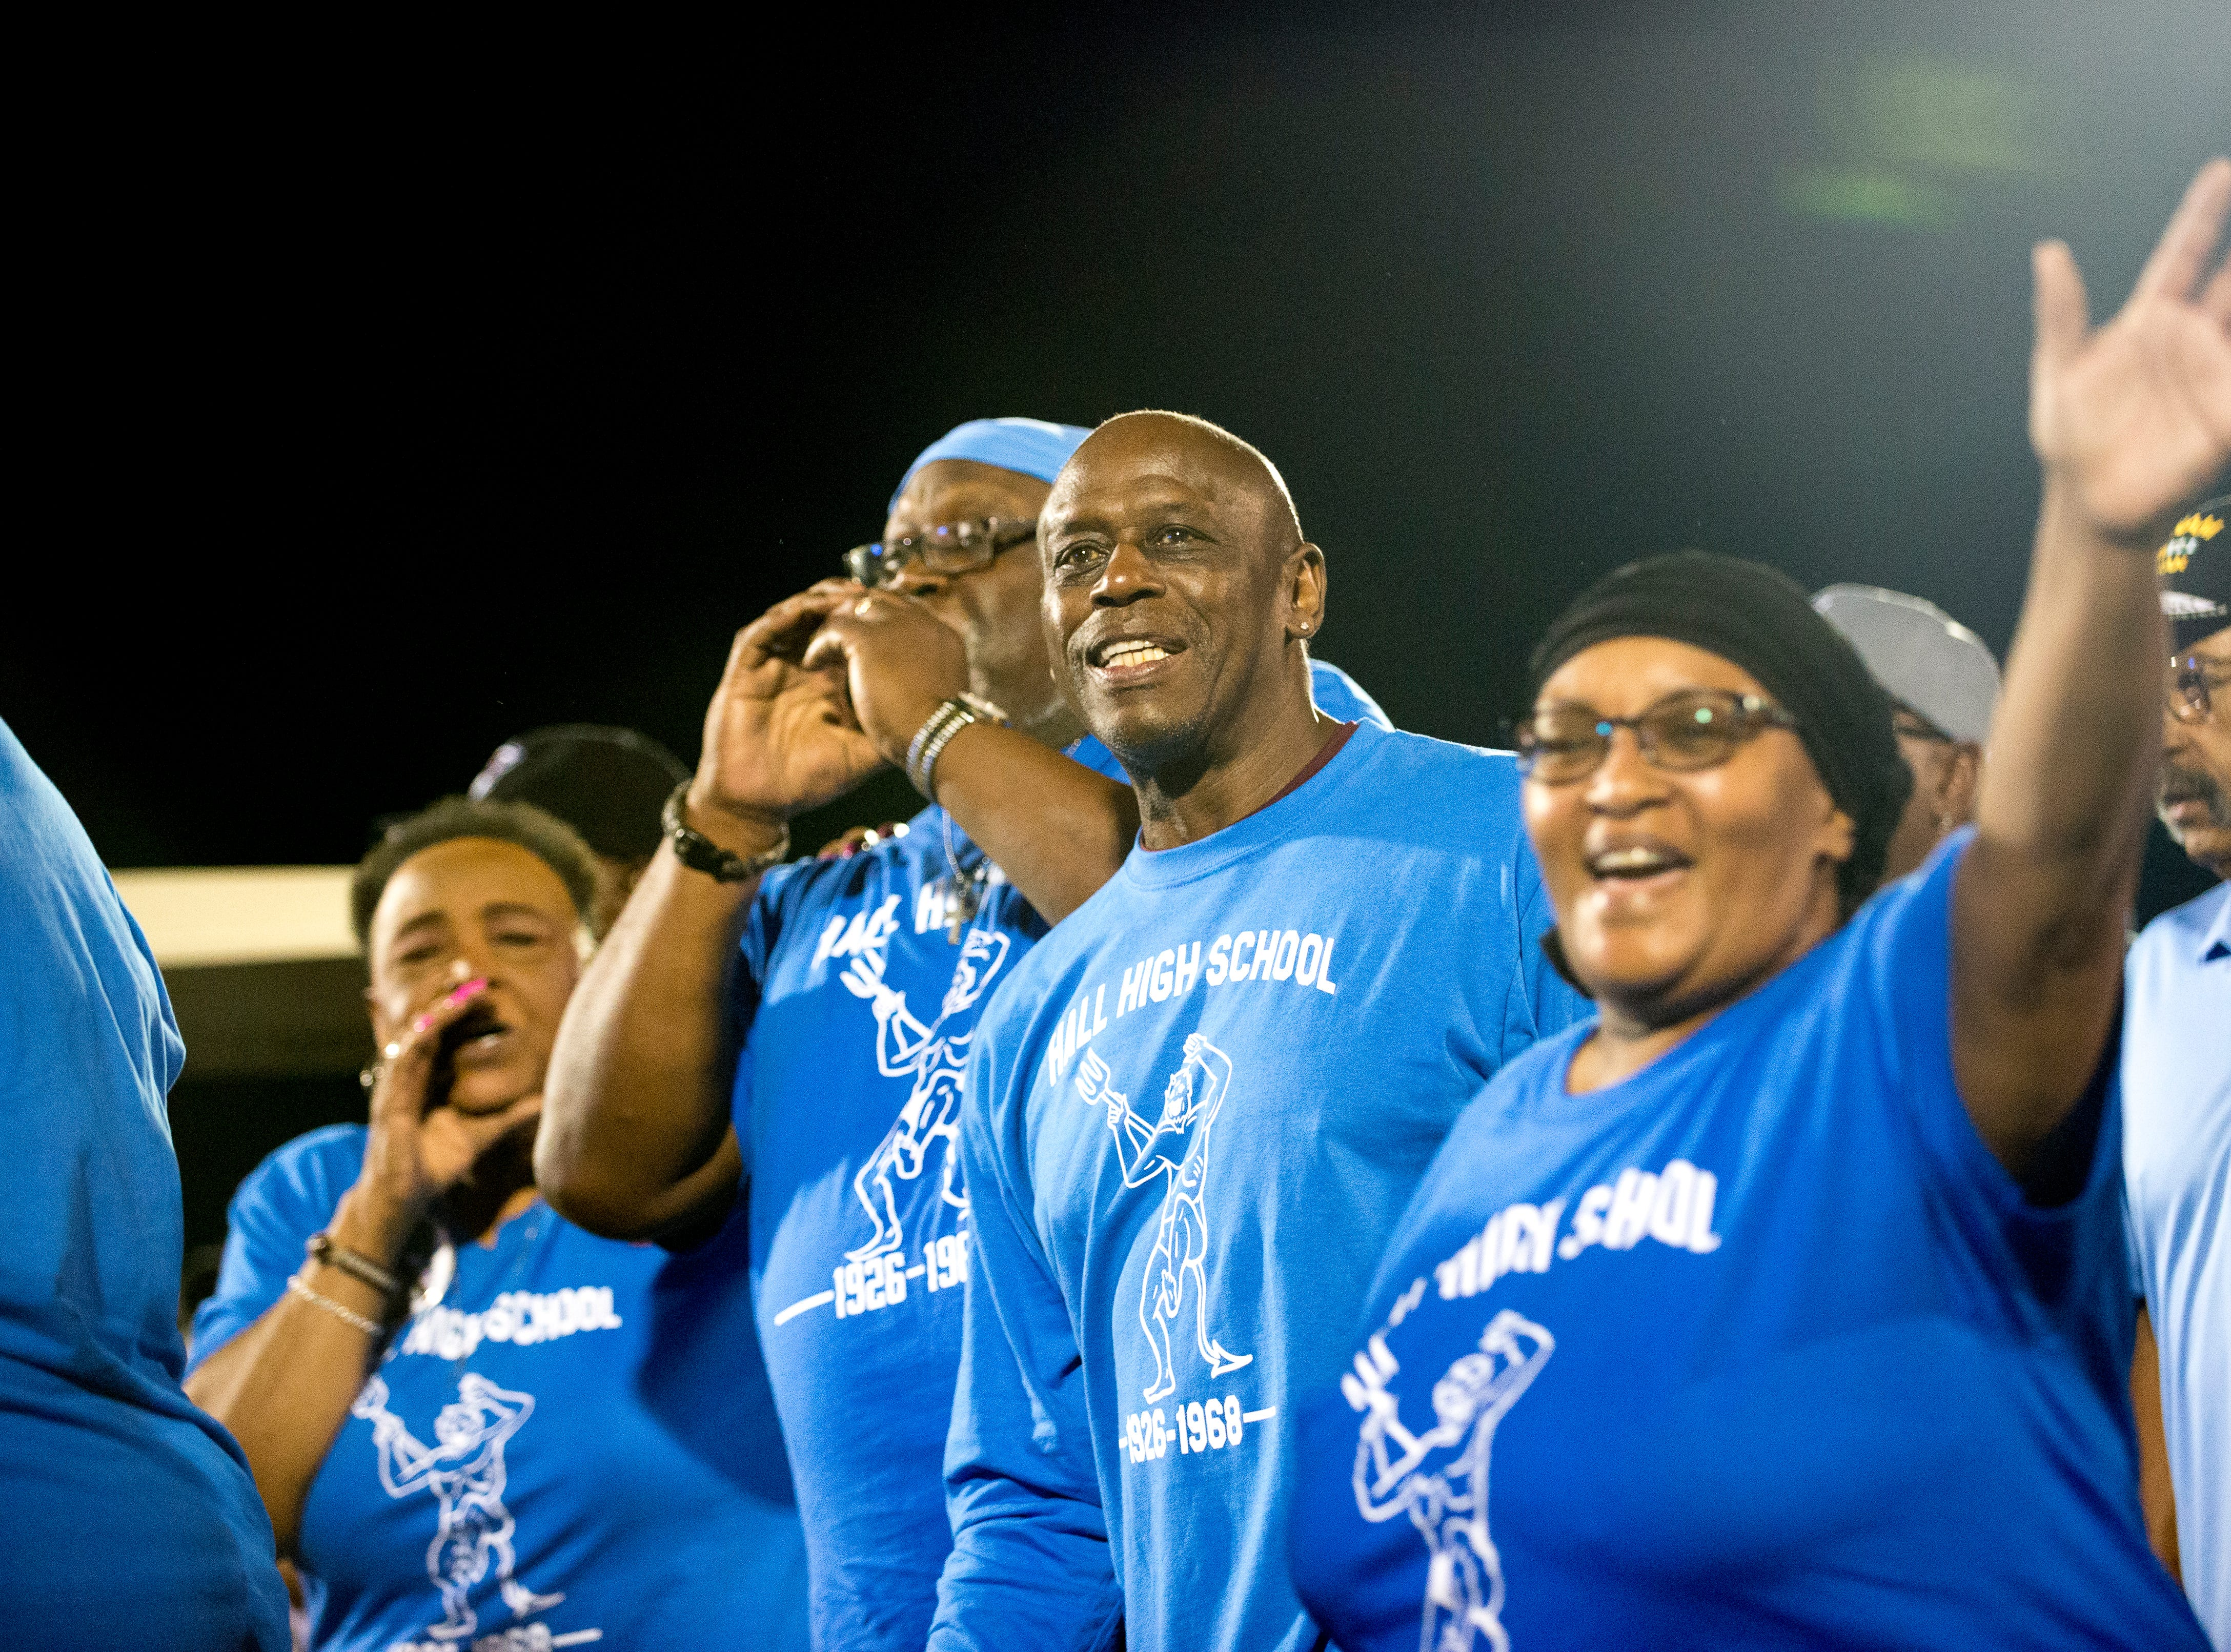 Hall High School alumni are honored during a halftime celebration during a football game between Alcoa and Northview at Alcoa High School in Alcoa, Tennessee on Friday, September 28, 2018. Alcoa played in historic reproduction Hall High School jersey's, modeled after the former all-black high school's jersey's.